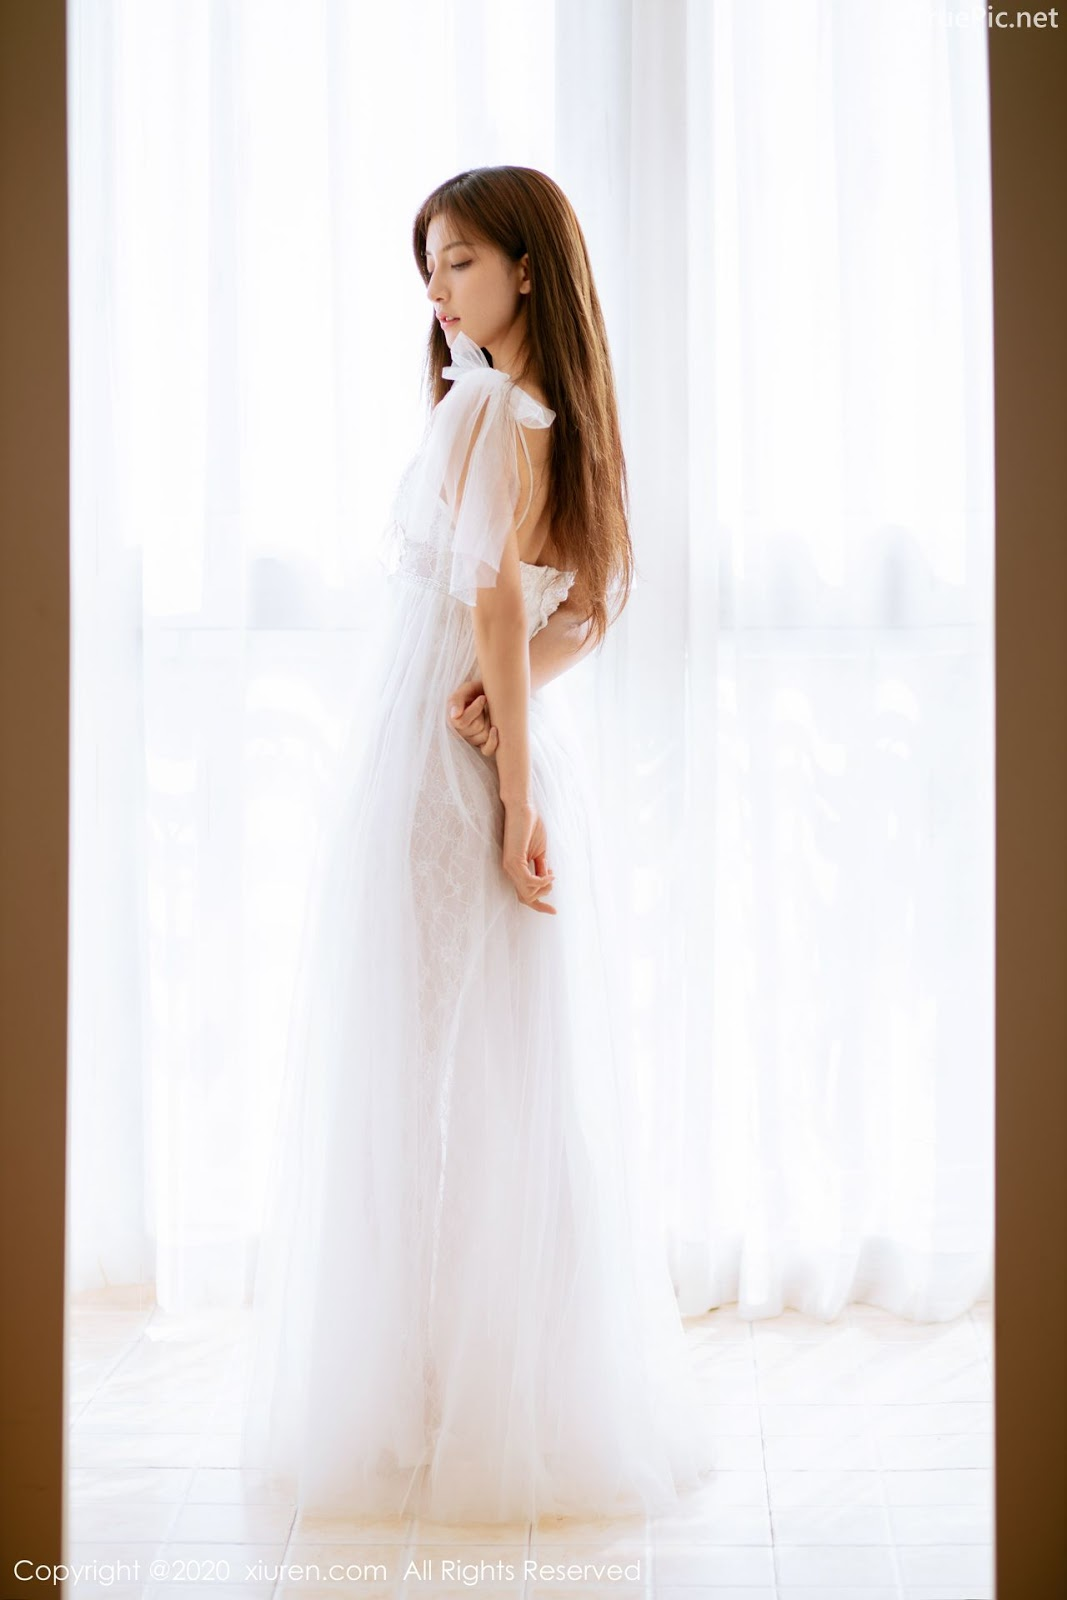 XIUREN No.1914 - Chinese model 林文文Yooki so Sexy with Transparent White Lace Dress - Picture 3